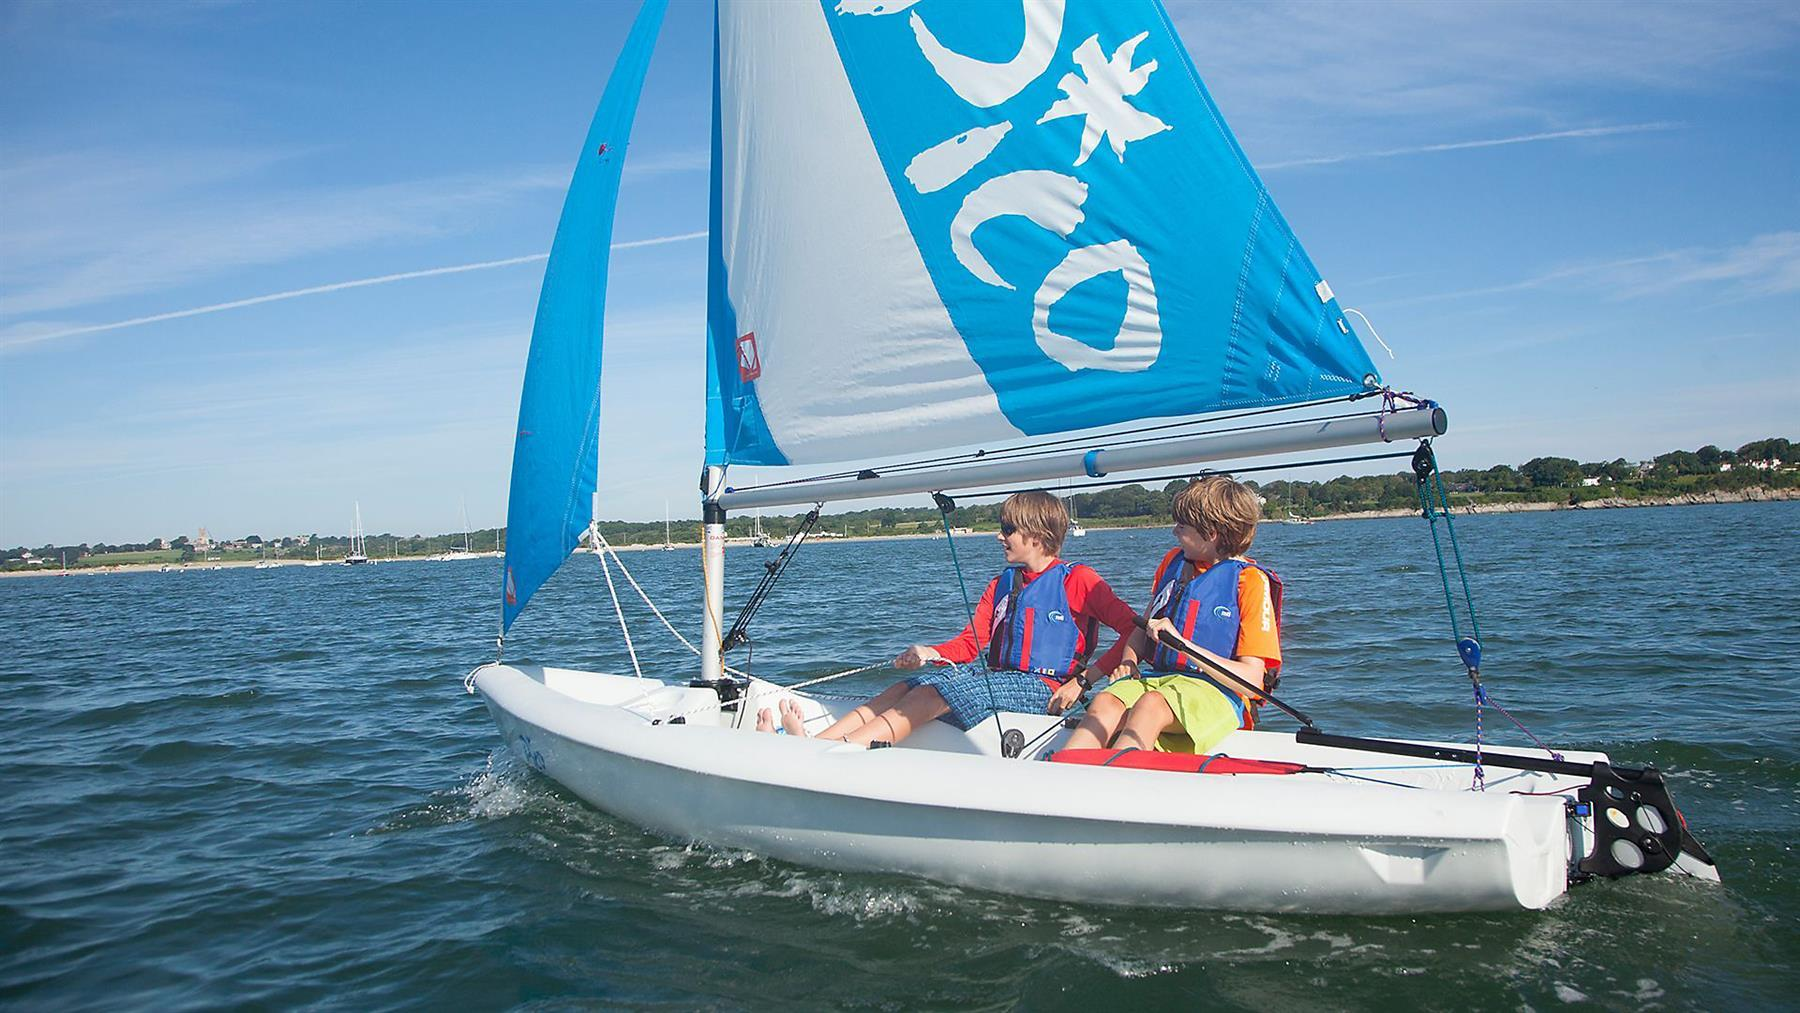 Laser Pico sailing on calm waters with two young boys.